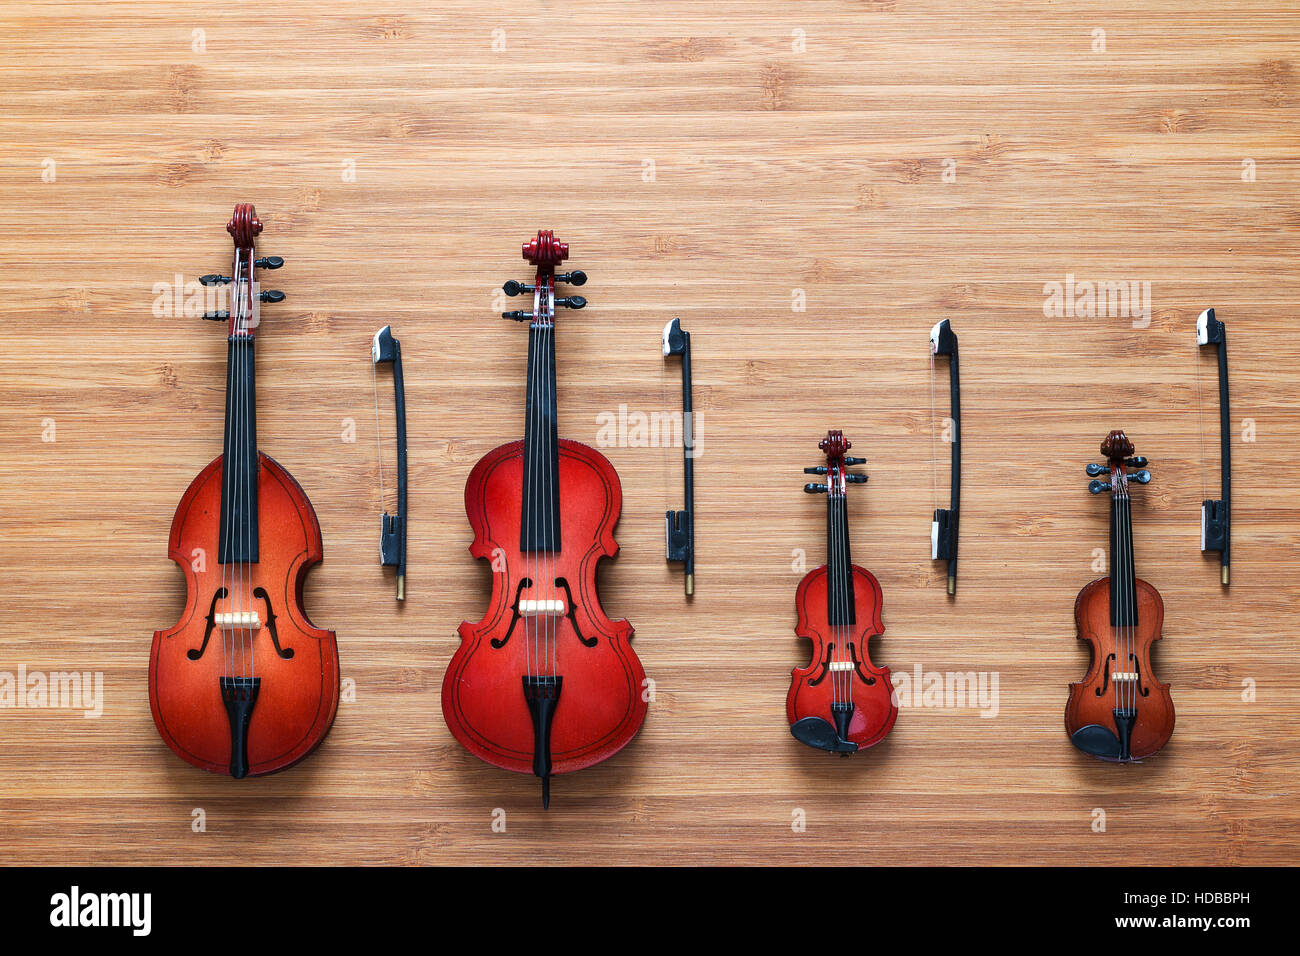 Set of four toy string musical orchestra instruments: violin, cello, contrabass, viola on a wooden background. Quartet. Music concept. Stock Photo